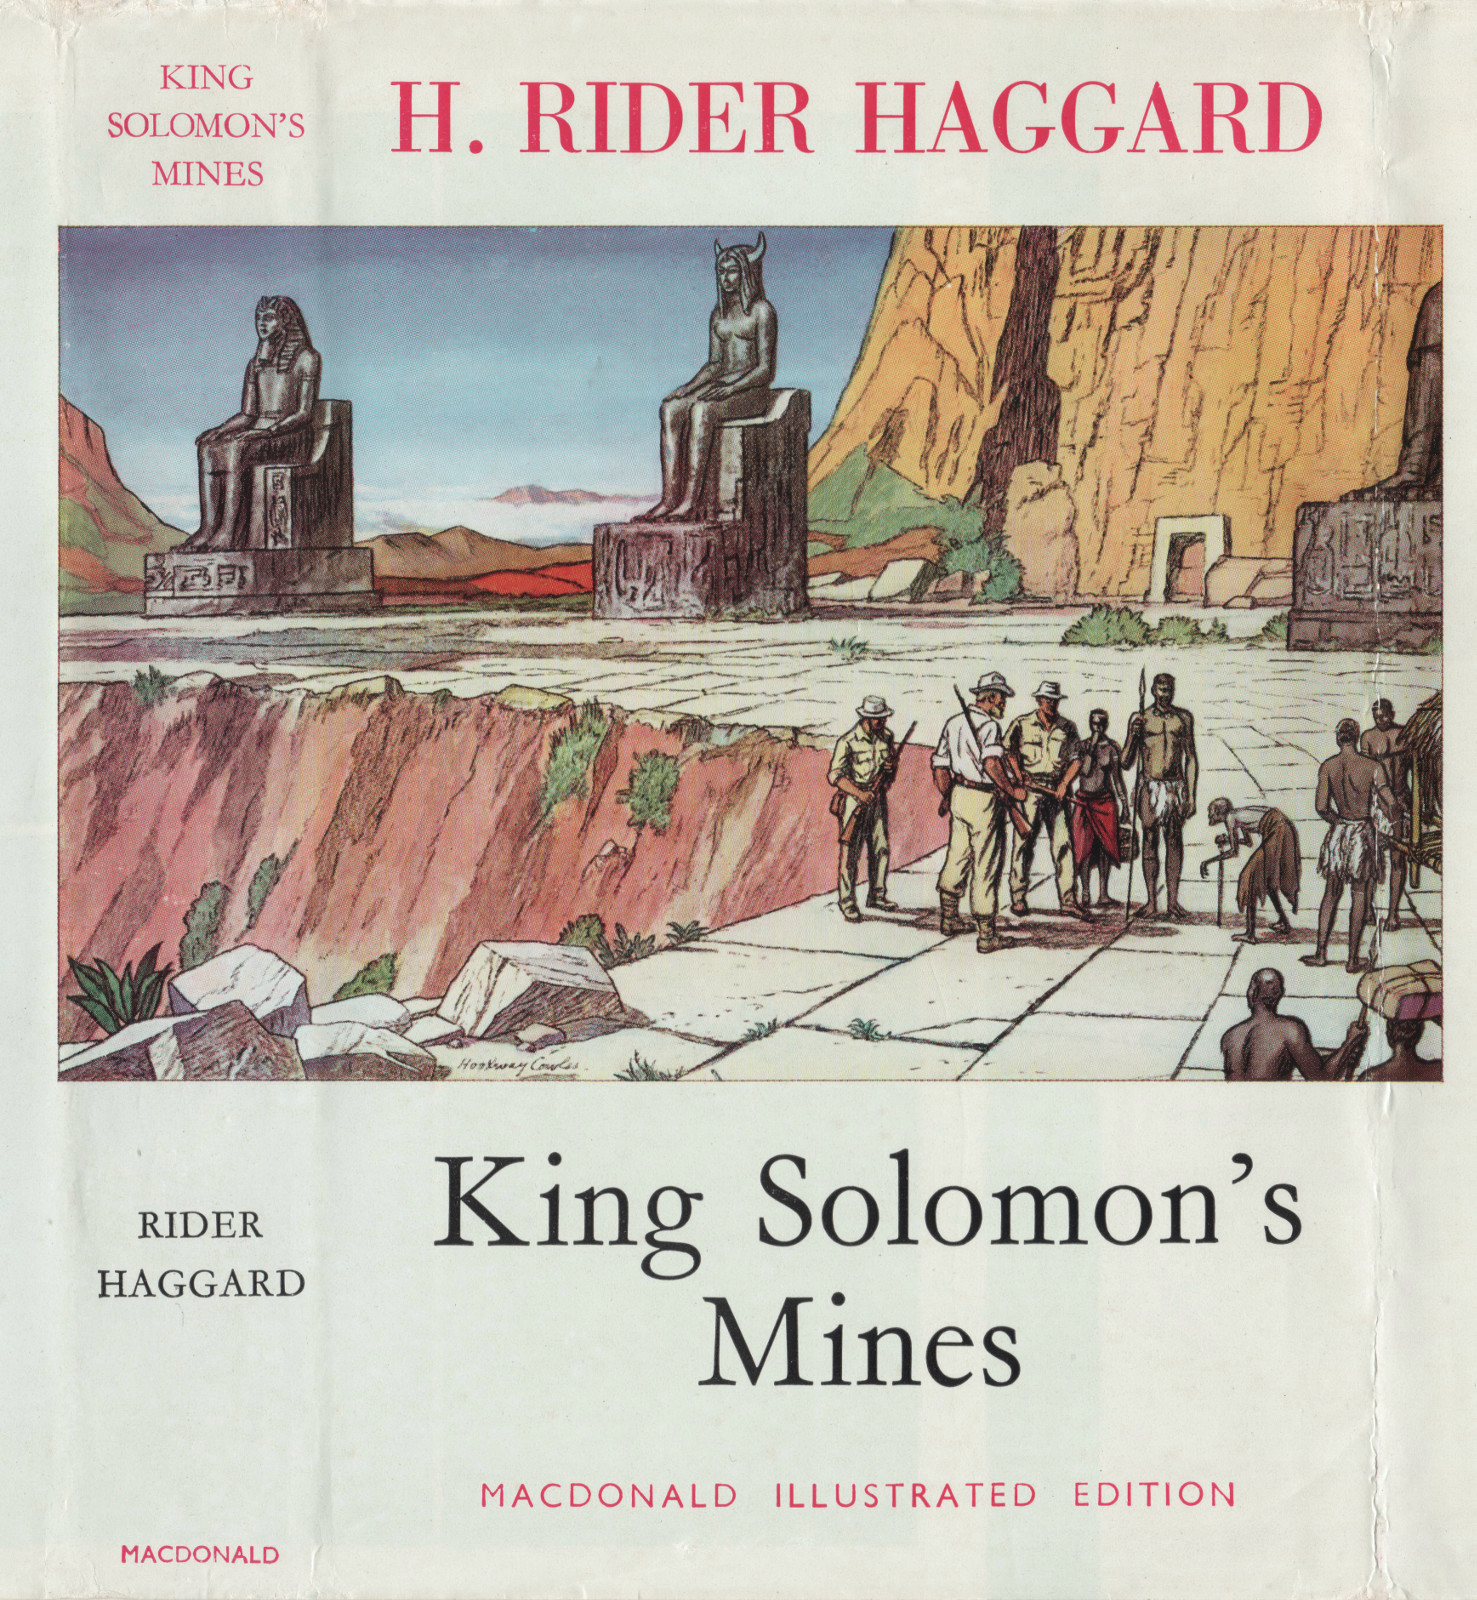 Kingsolomonsminesmacdonalddustjacket